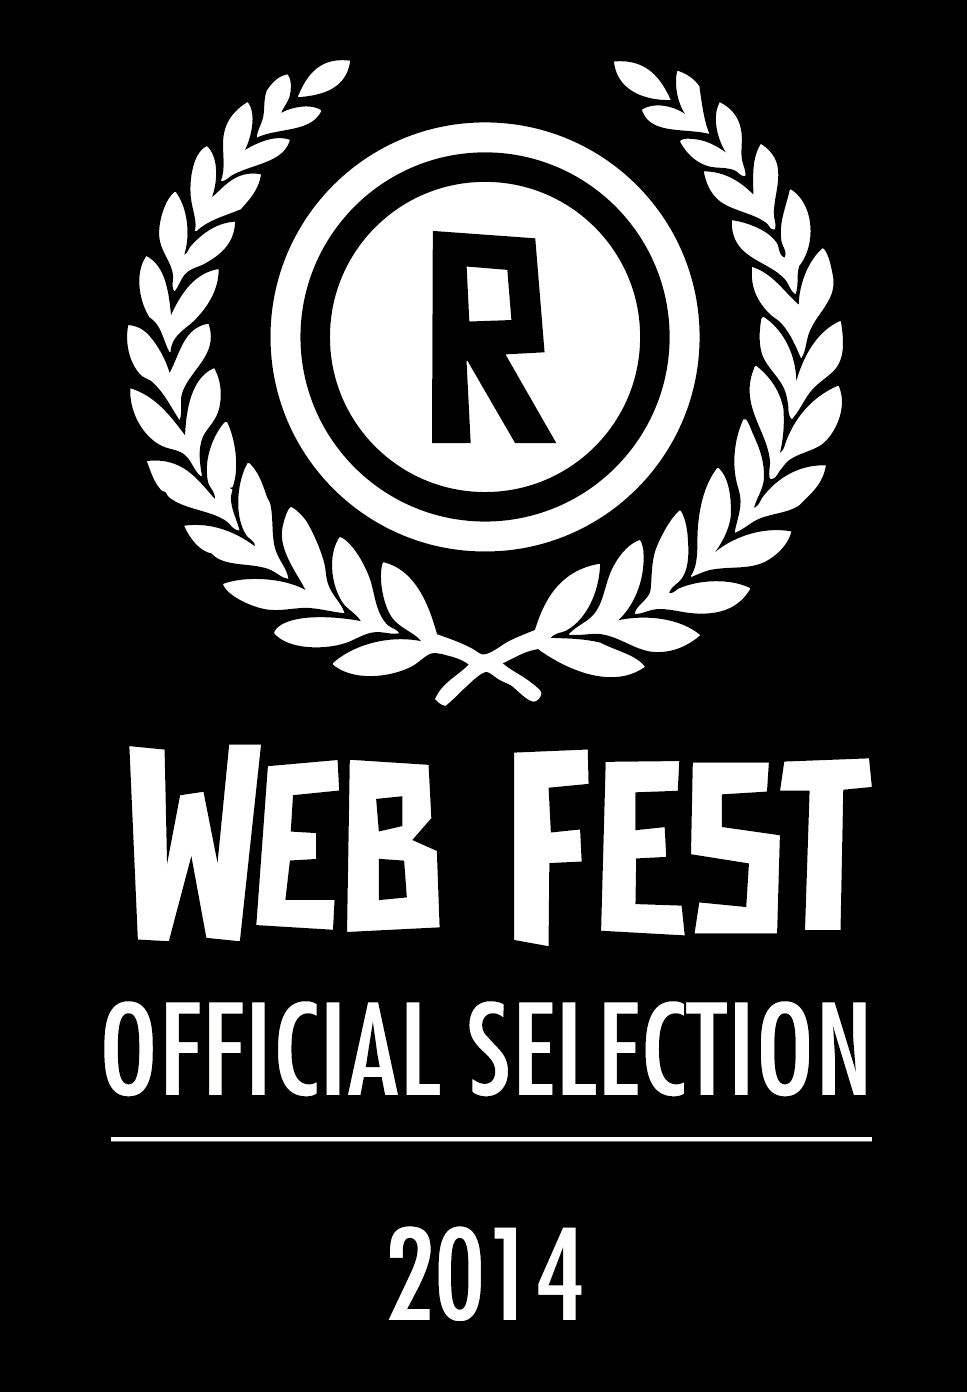 webfest2014-official-selection-02